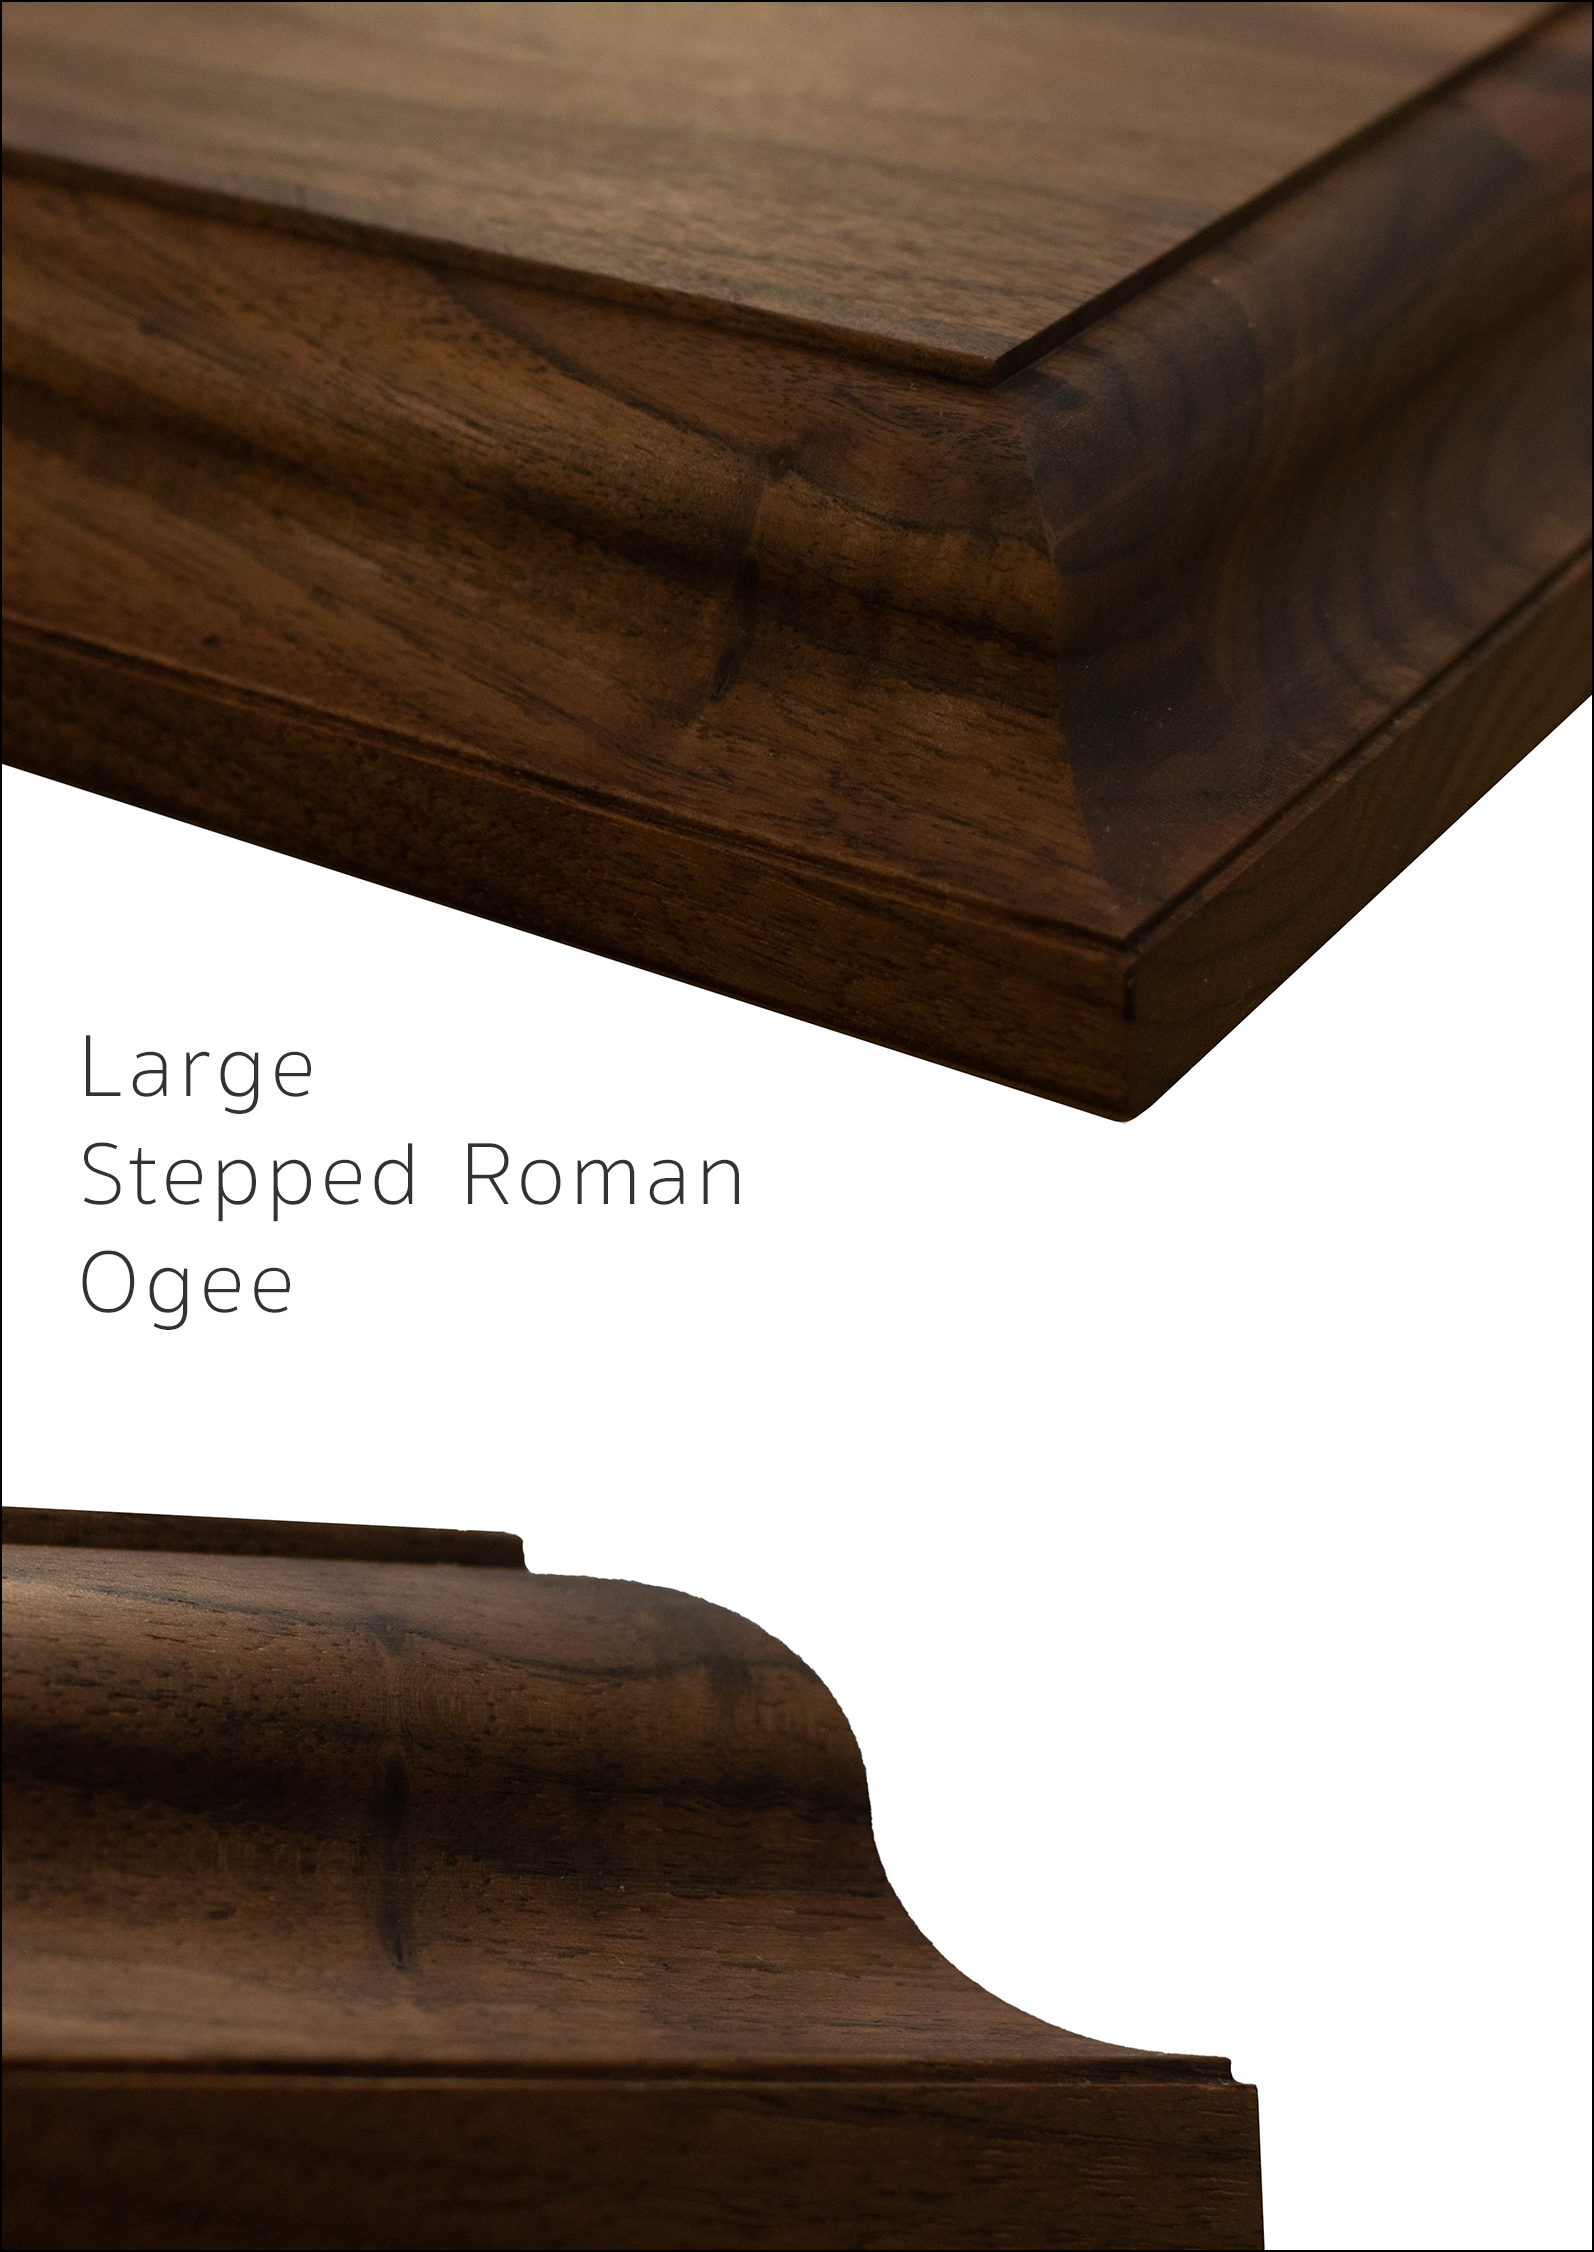 Large Stepped Roman Ogee